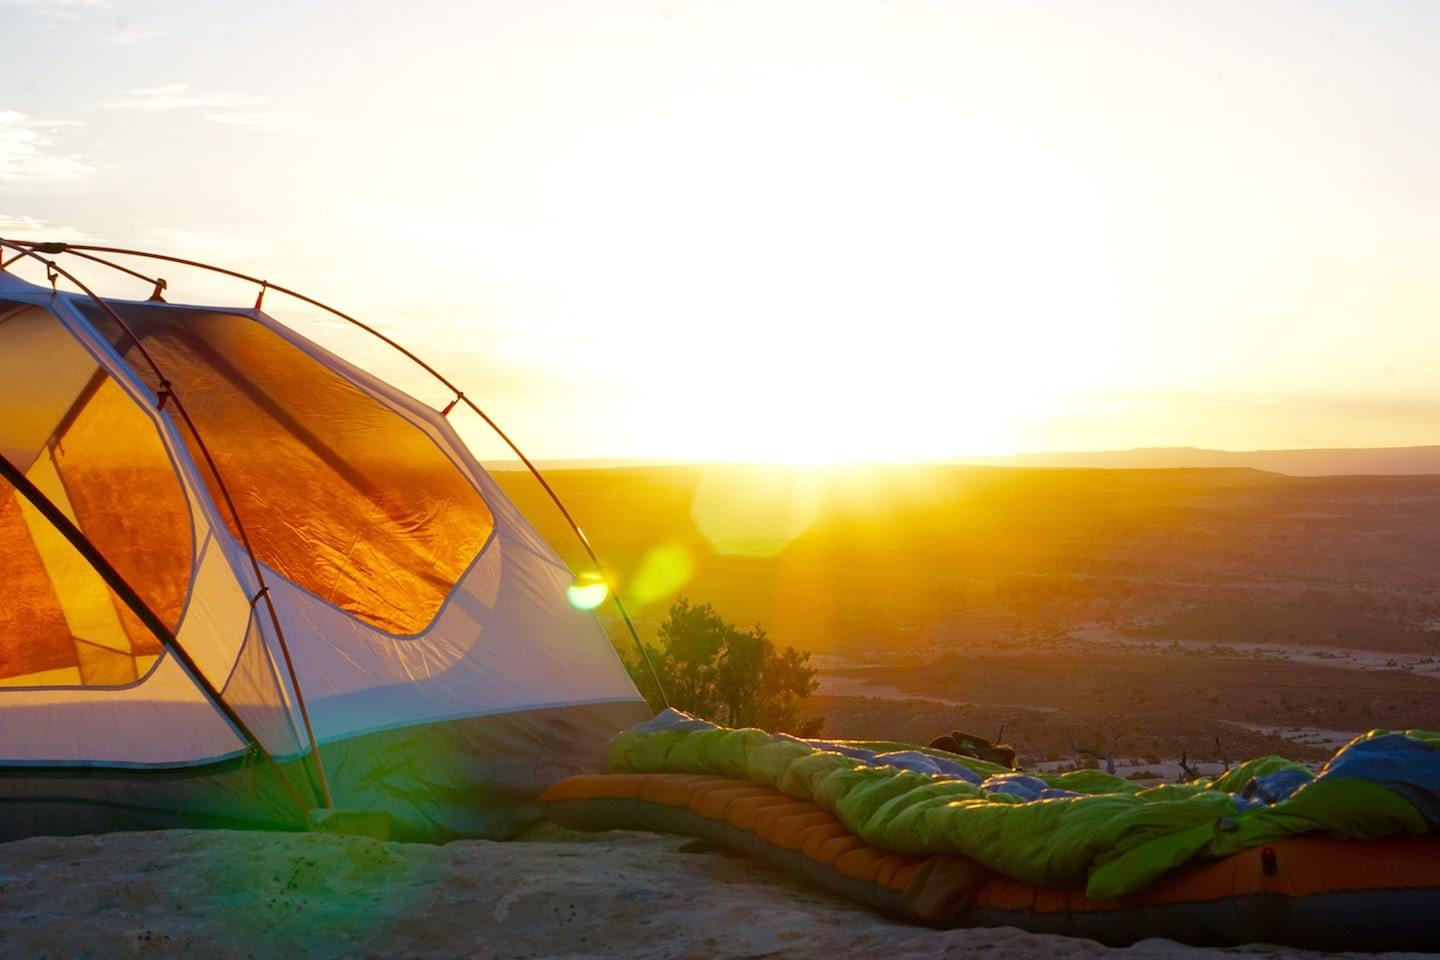 tent with sleeping bag